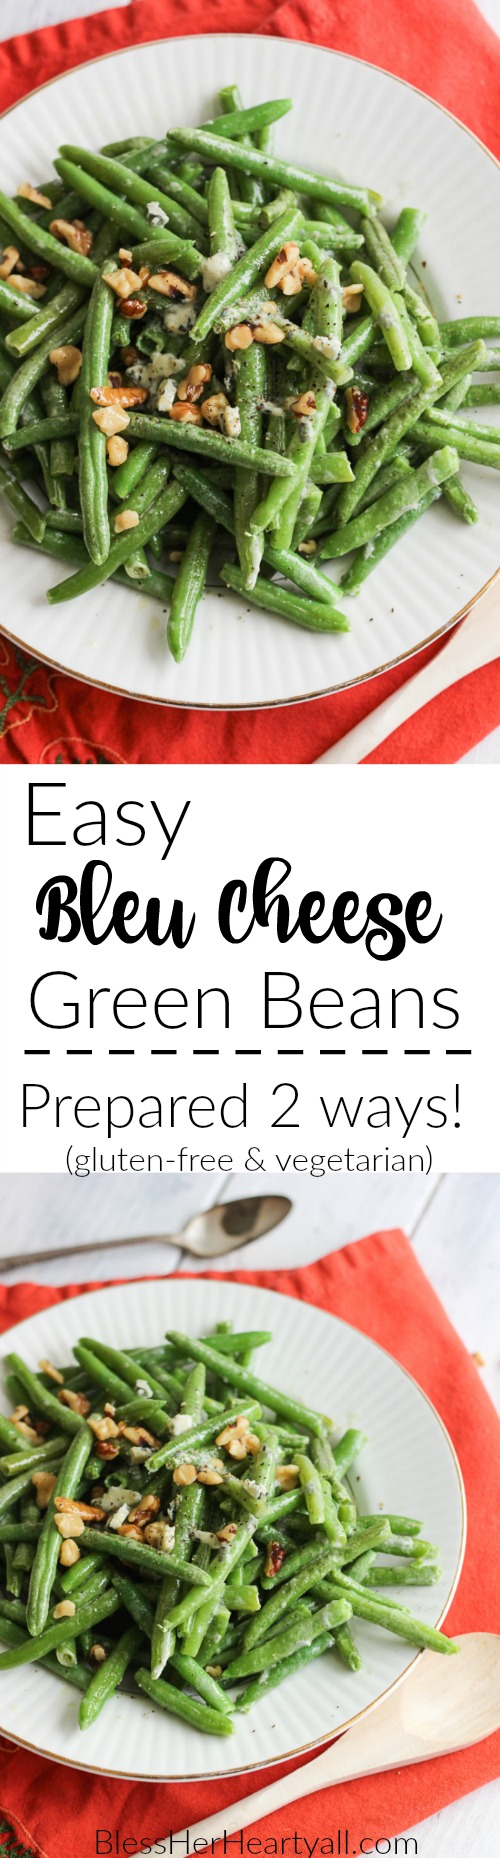 Easy Blue Cheese Green Beans bring together fresh green beans, prepared two different ways, with a decadent gluten-free blue cheese sauce drizzled and stirred over top for a warm, hearty, cheesy, creamy addition to your holiday table!